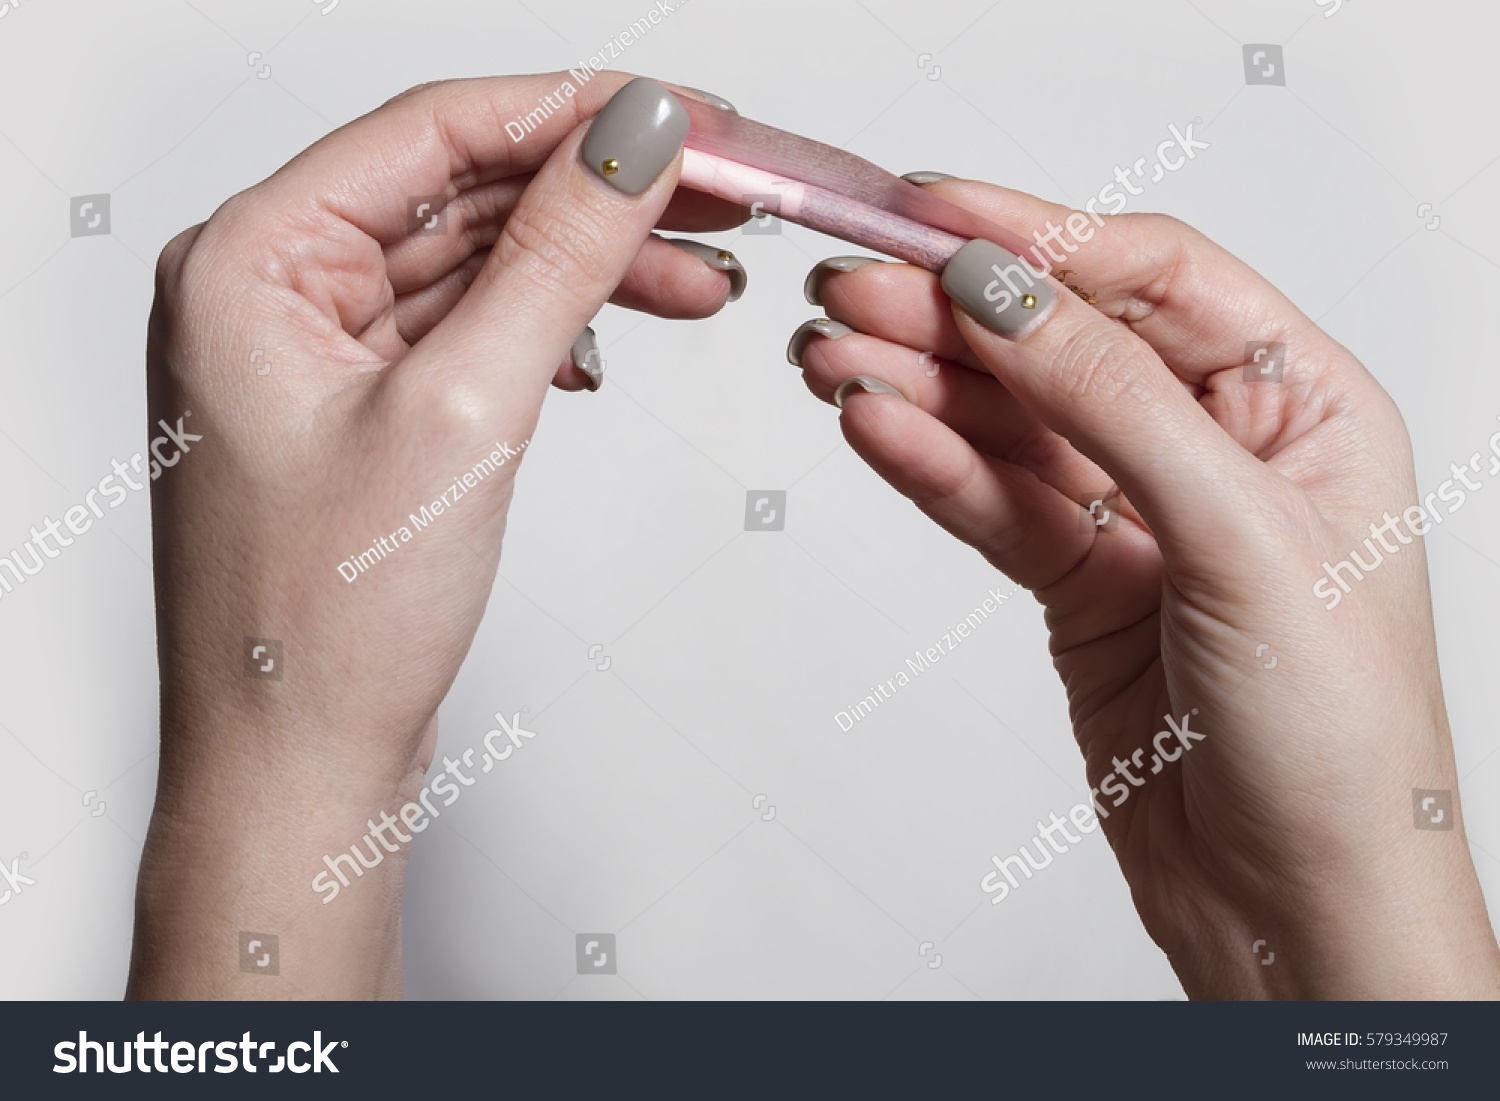 Hands Woman Rolling Cigarette Rolling Tobacco Stock Photo (Edit Now